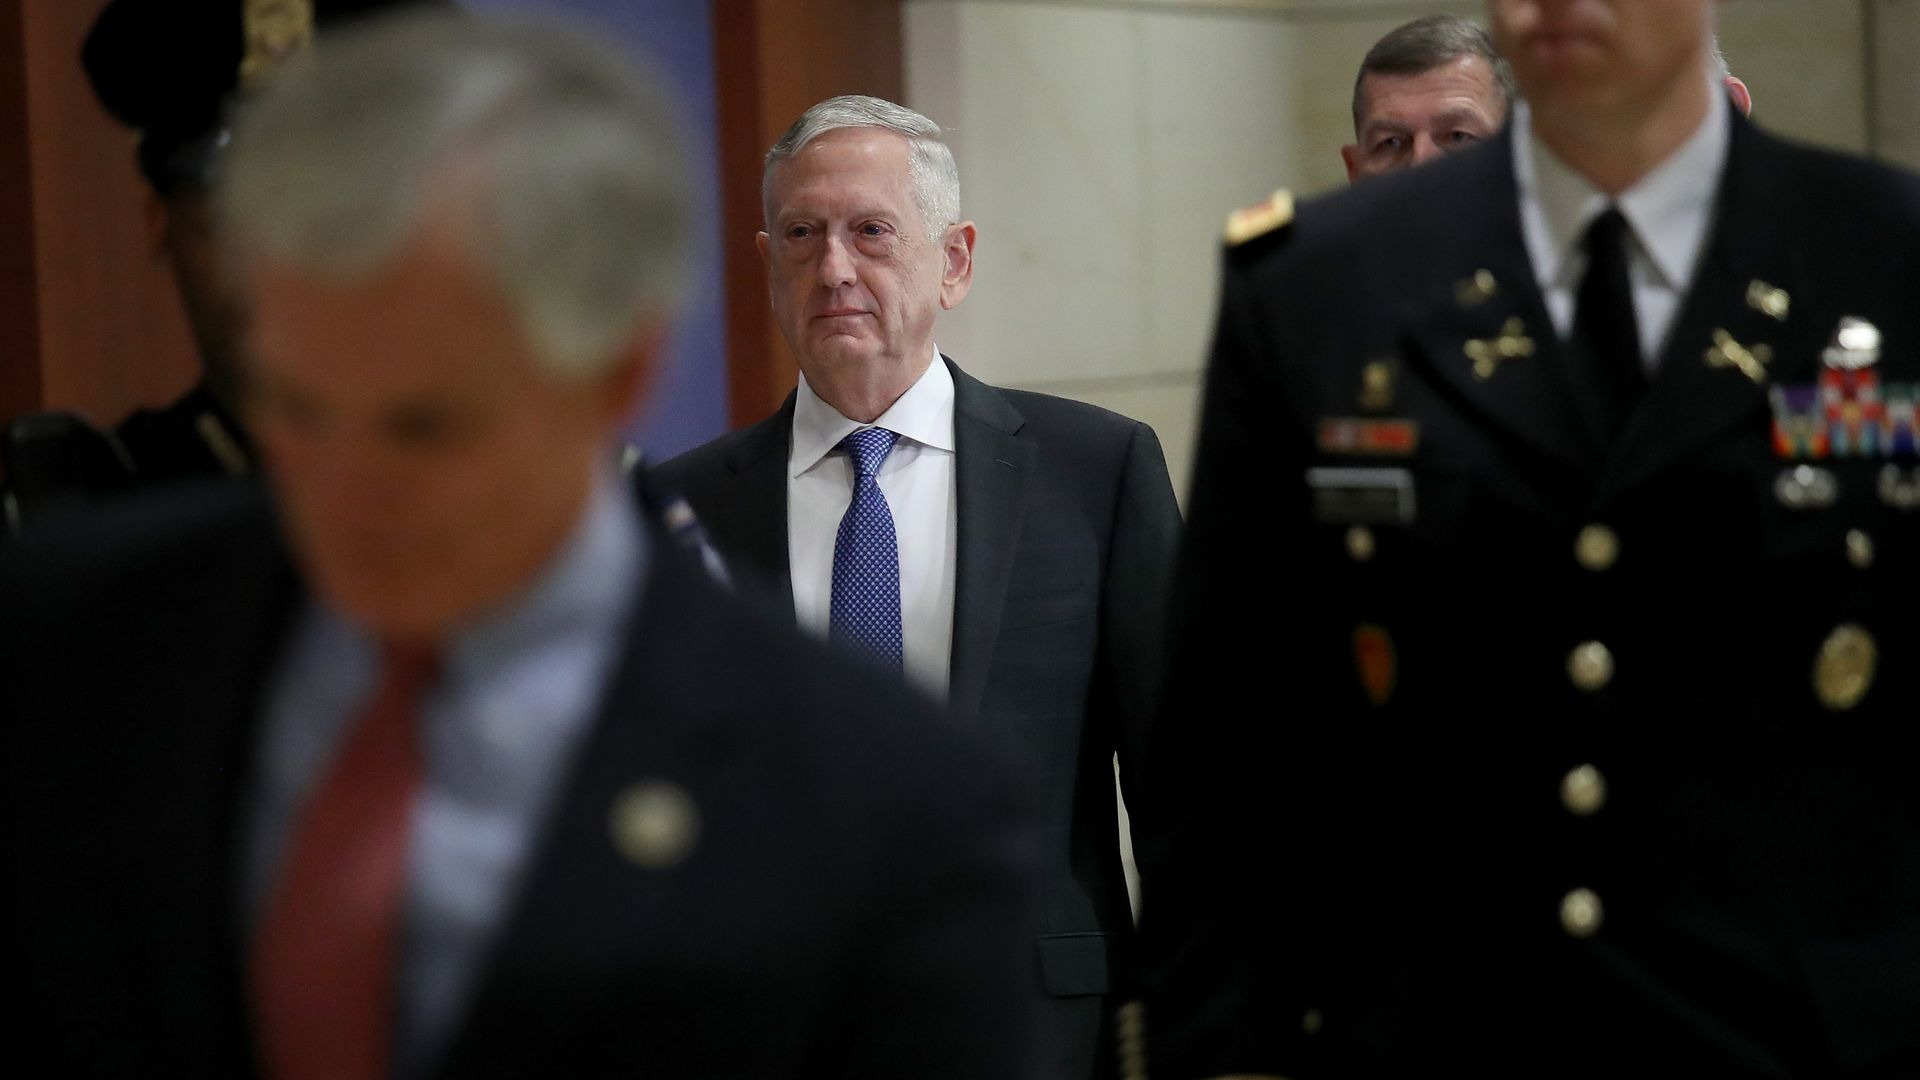 Jim Mattis walks down a hallway behind decorated and uniformed military personnel.